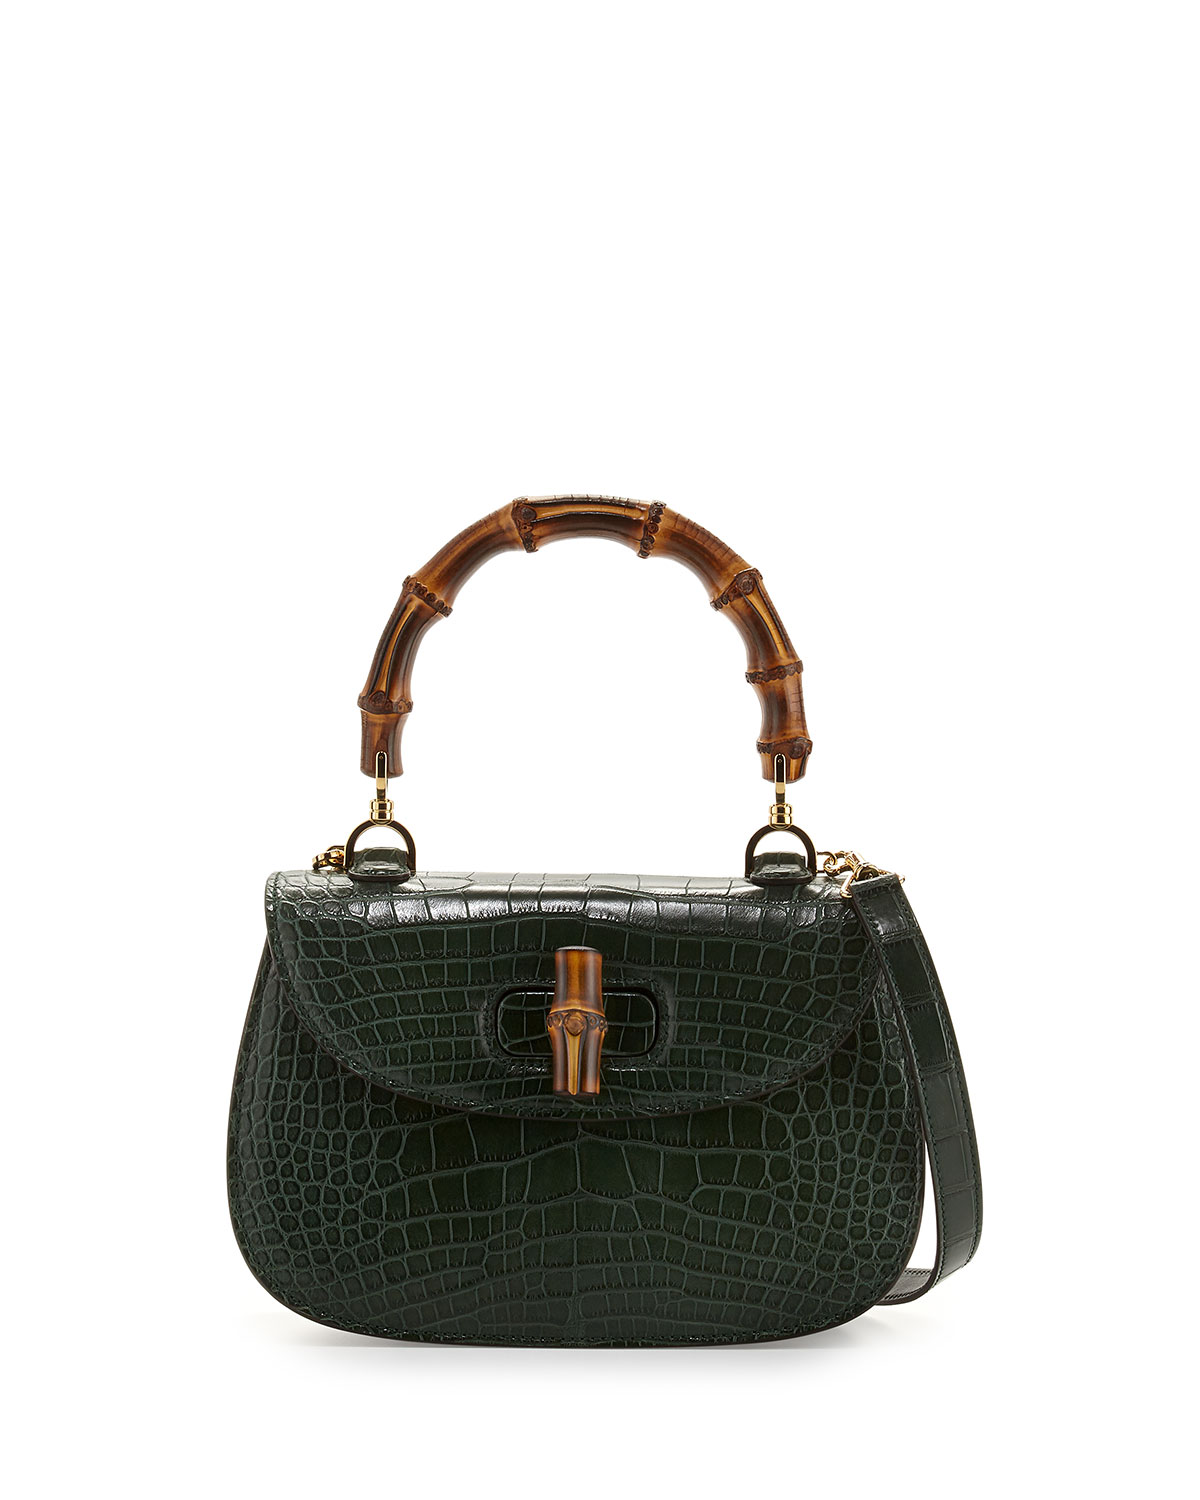 22ced58b Gucci Bamboo Classic Small Crocodile Bag, Emerald Green | Neiman Marcus